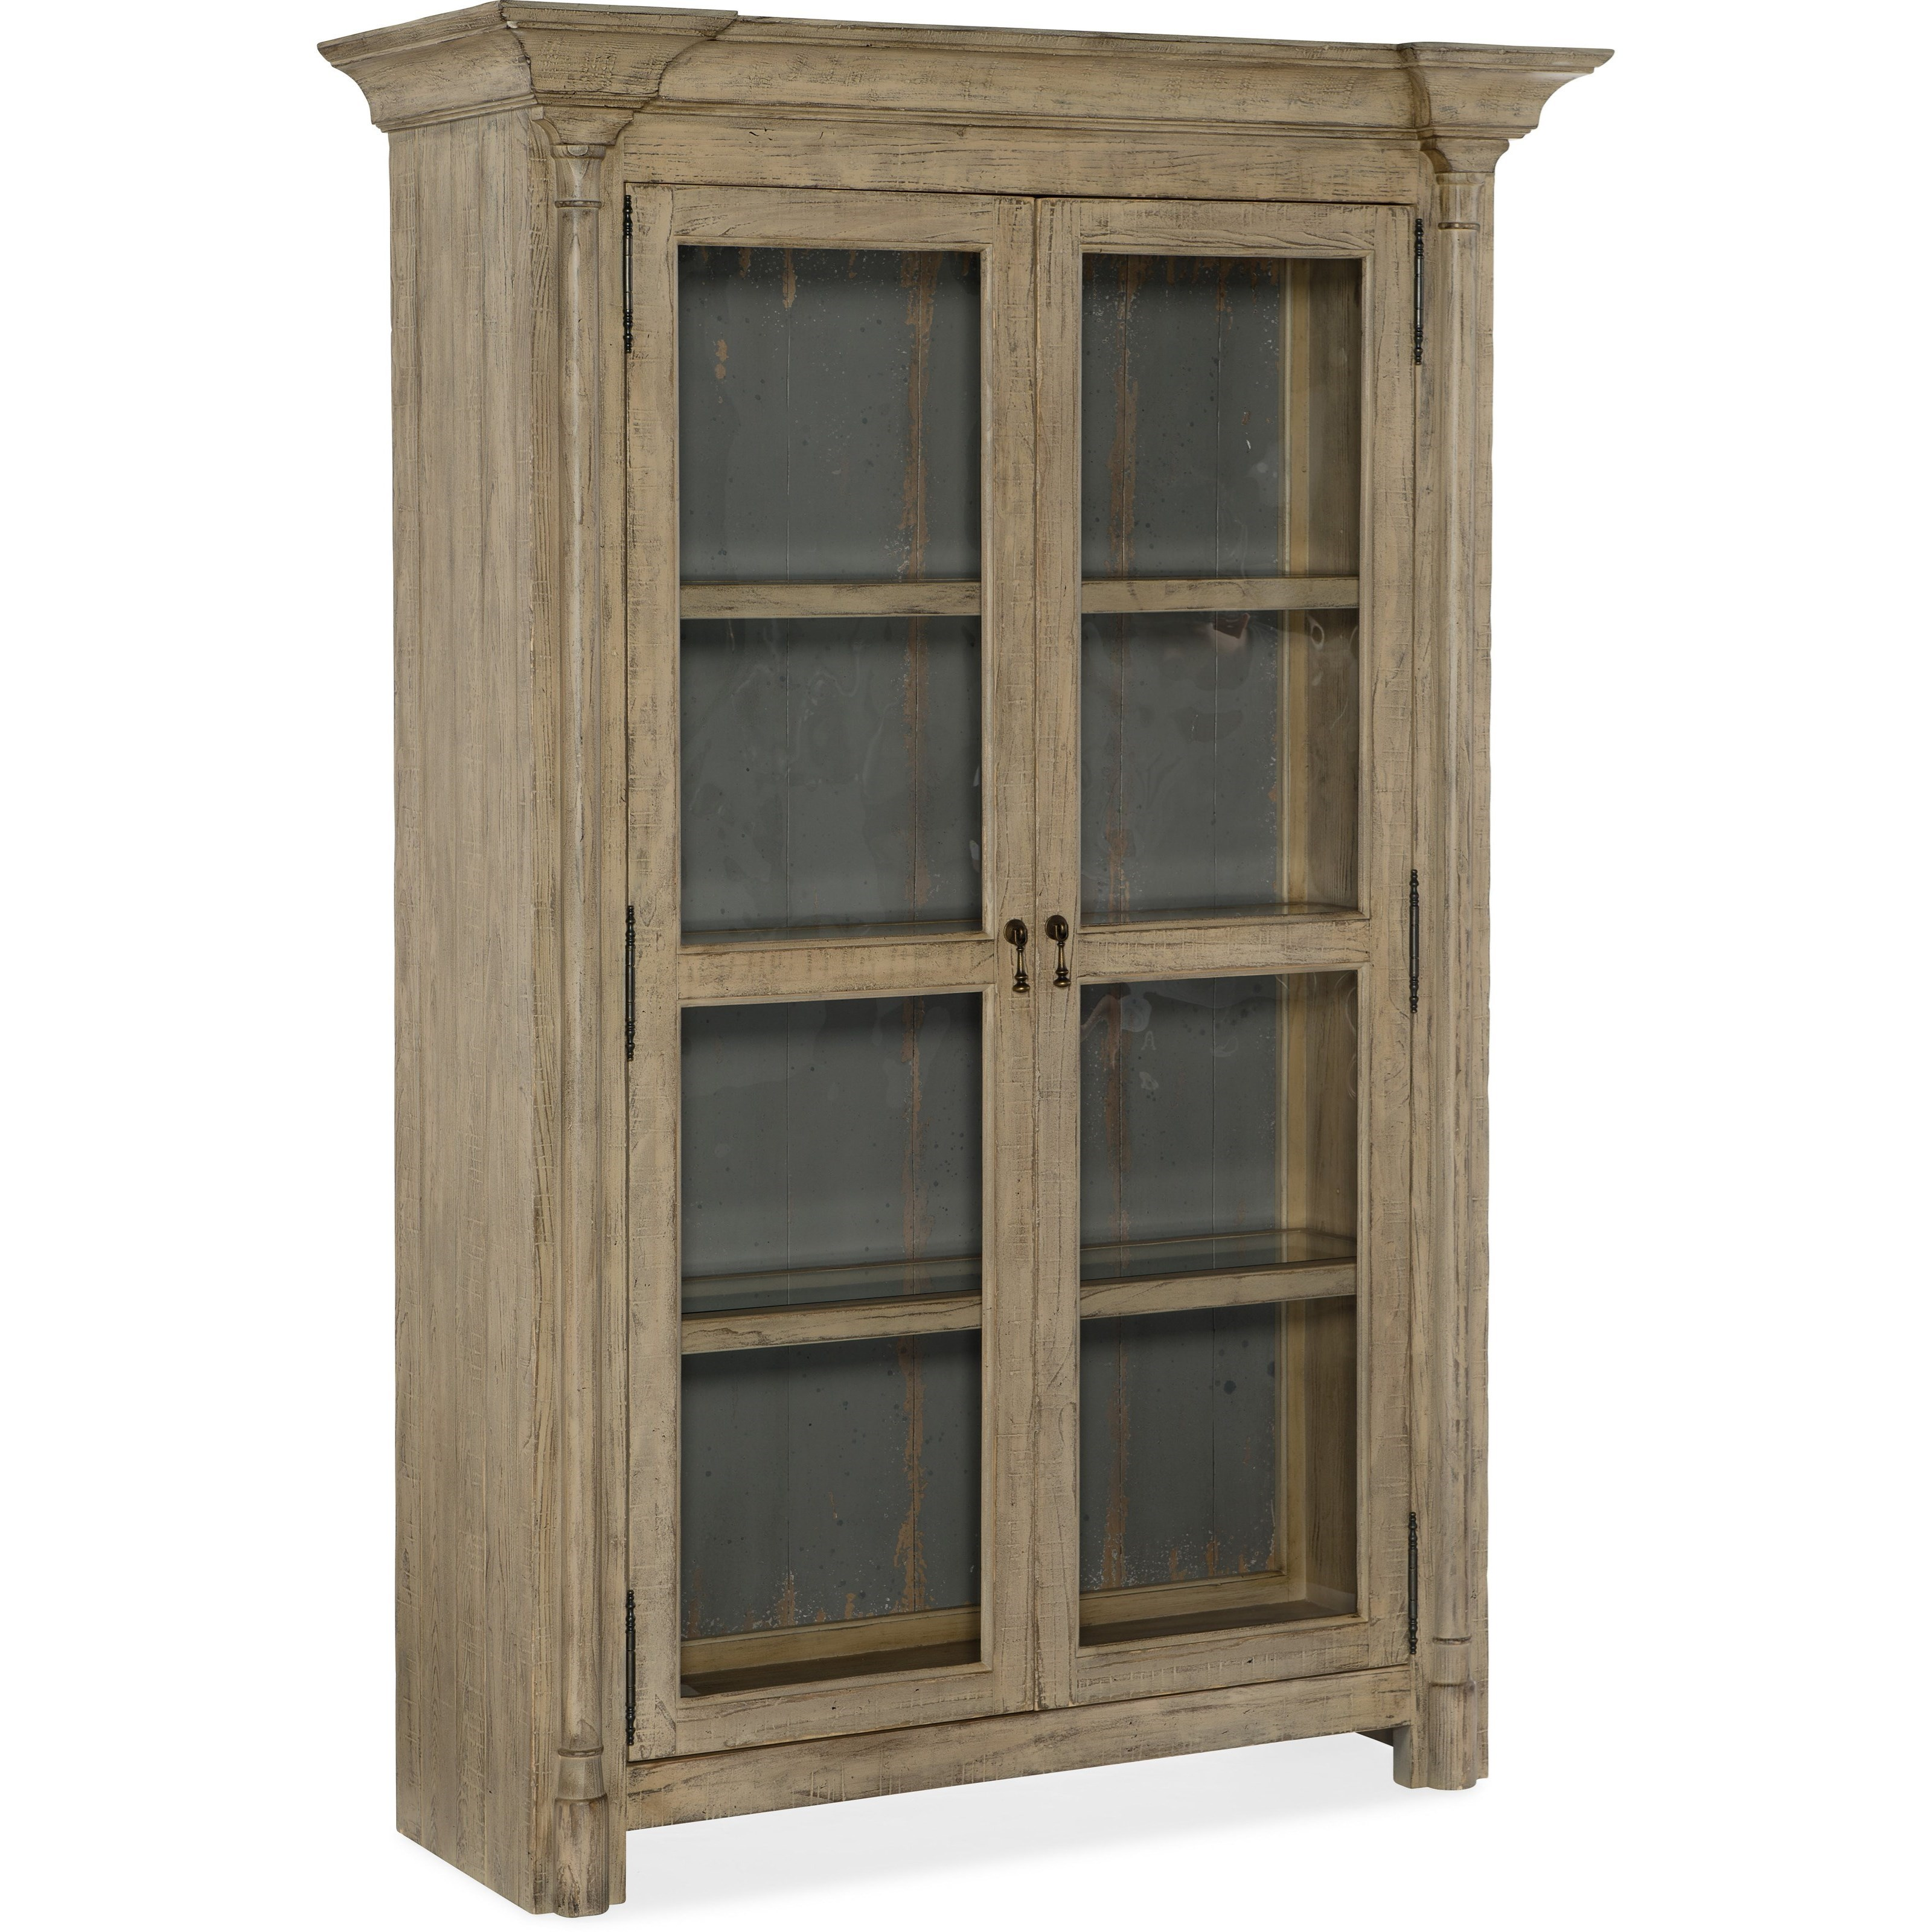 Ciao Bella Display Cabinet by Hooker Furniture at Miller Waldrop Furniture and Decor